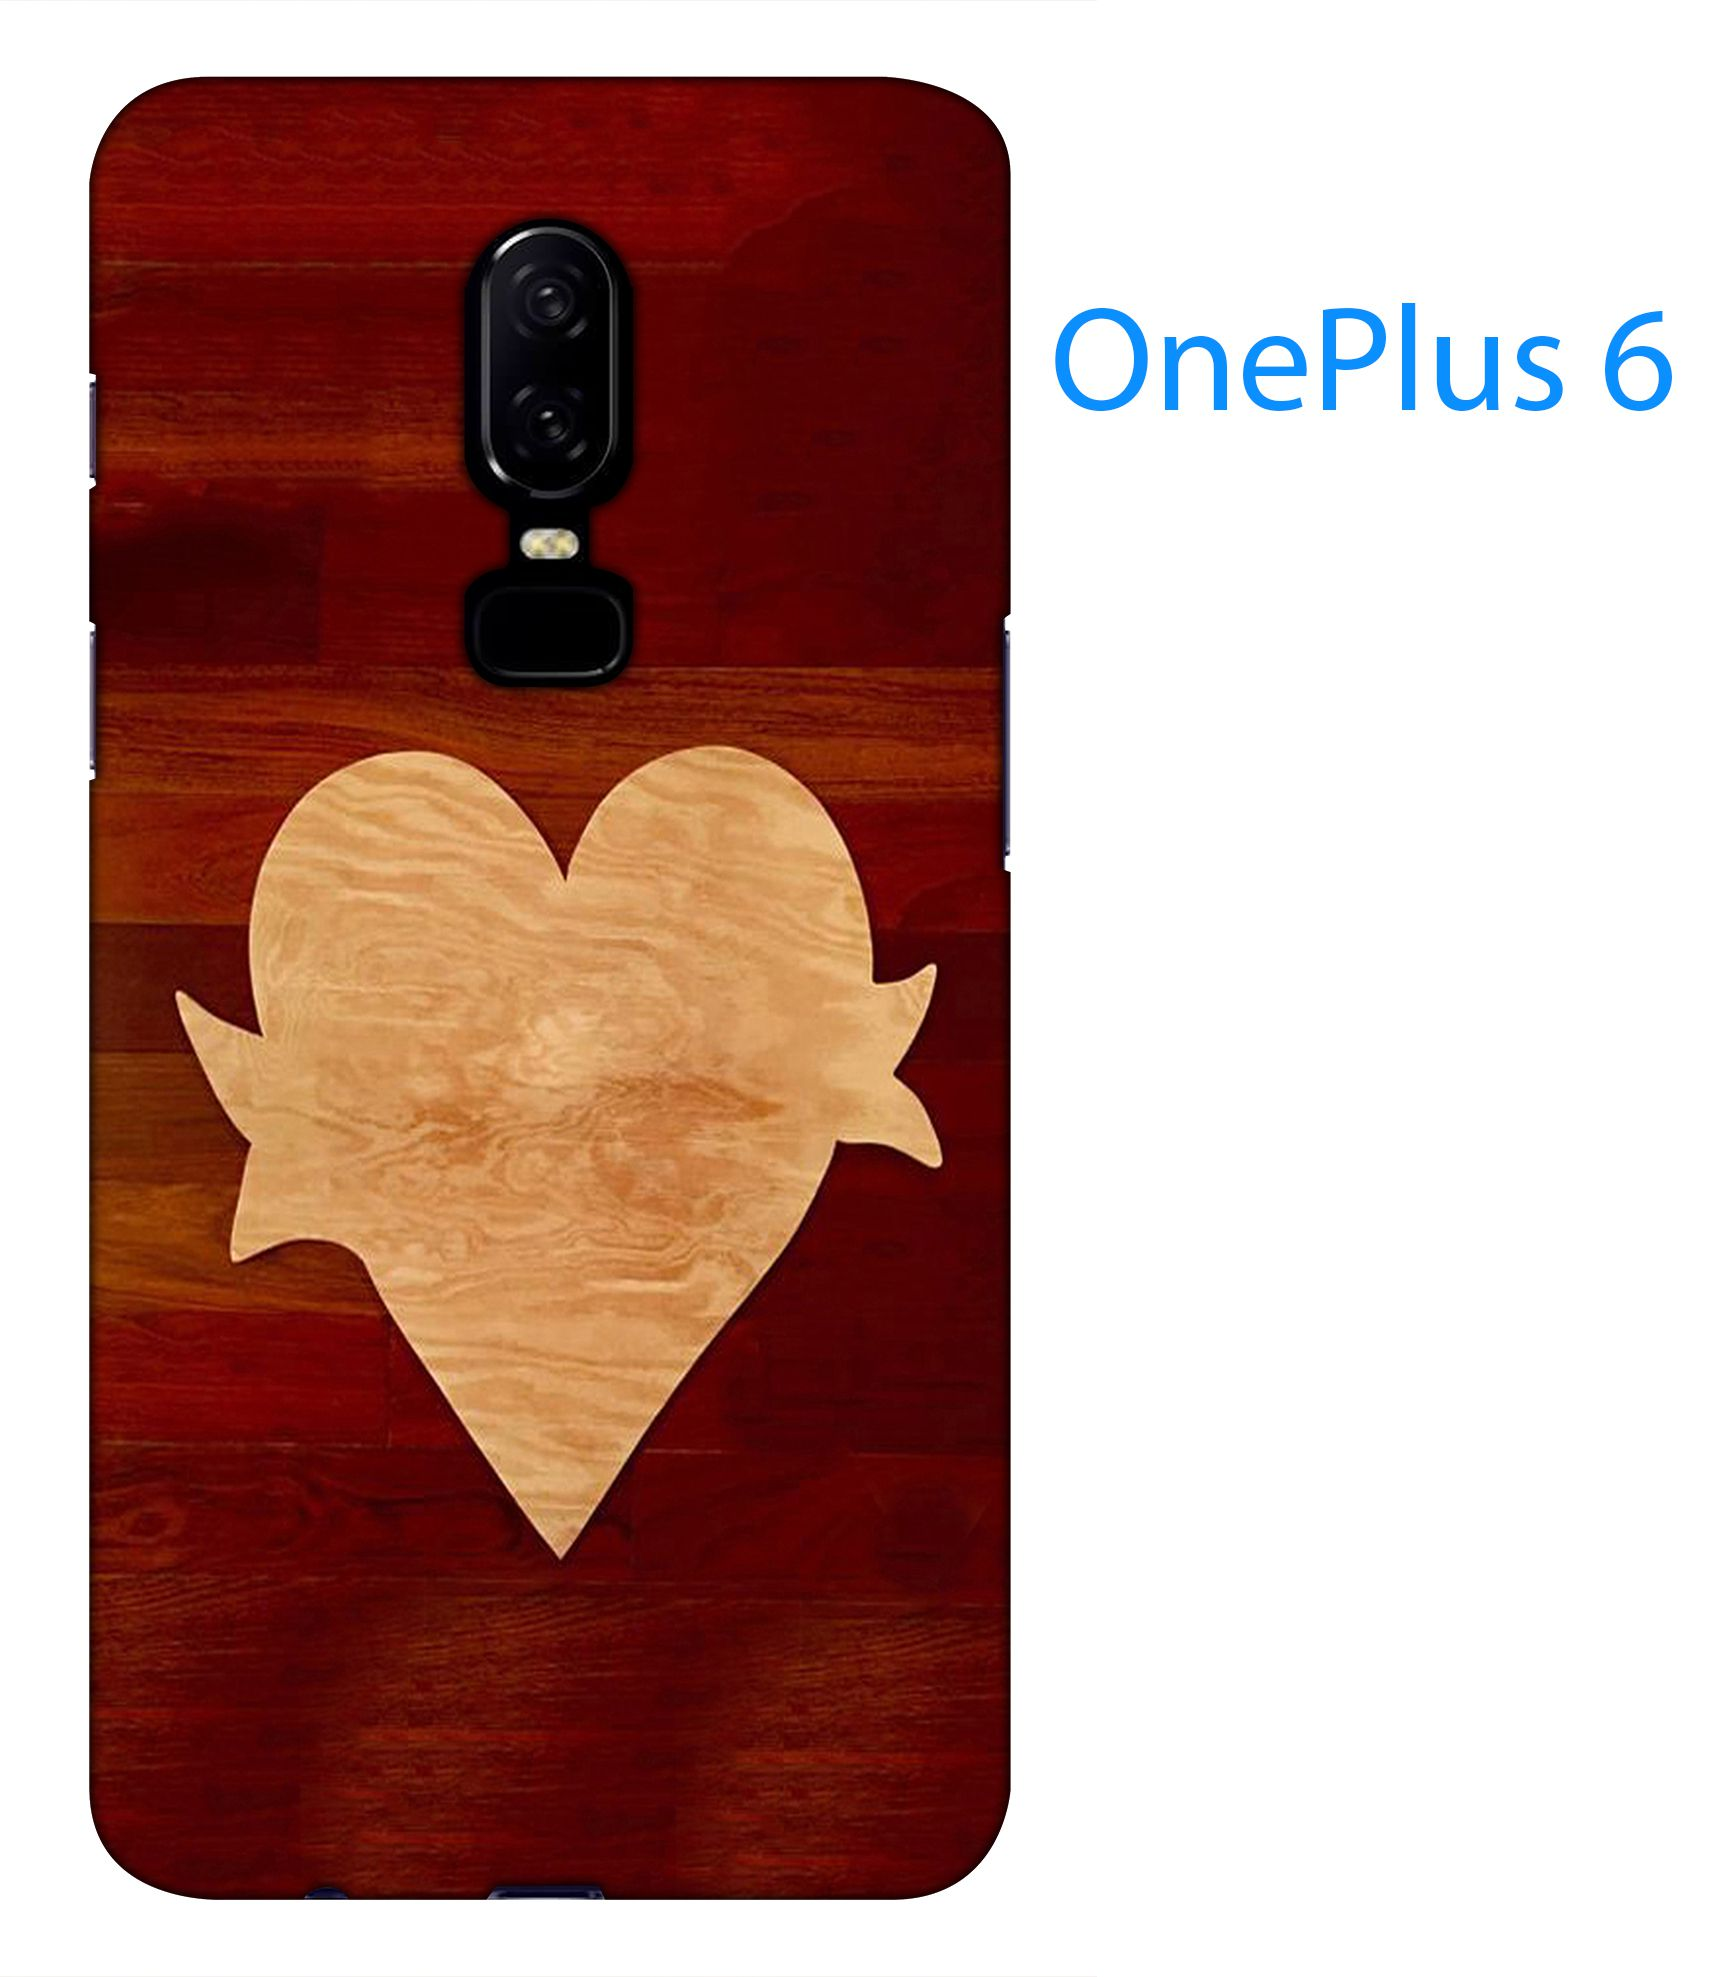 OnePlus 6 Printed Cover By Blutec